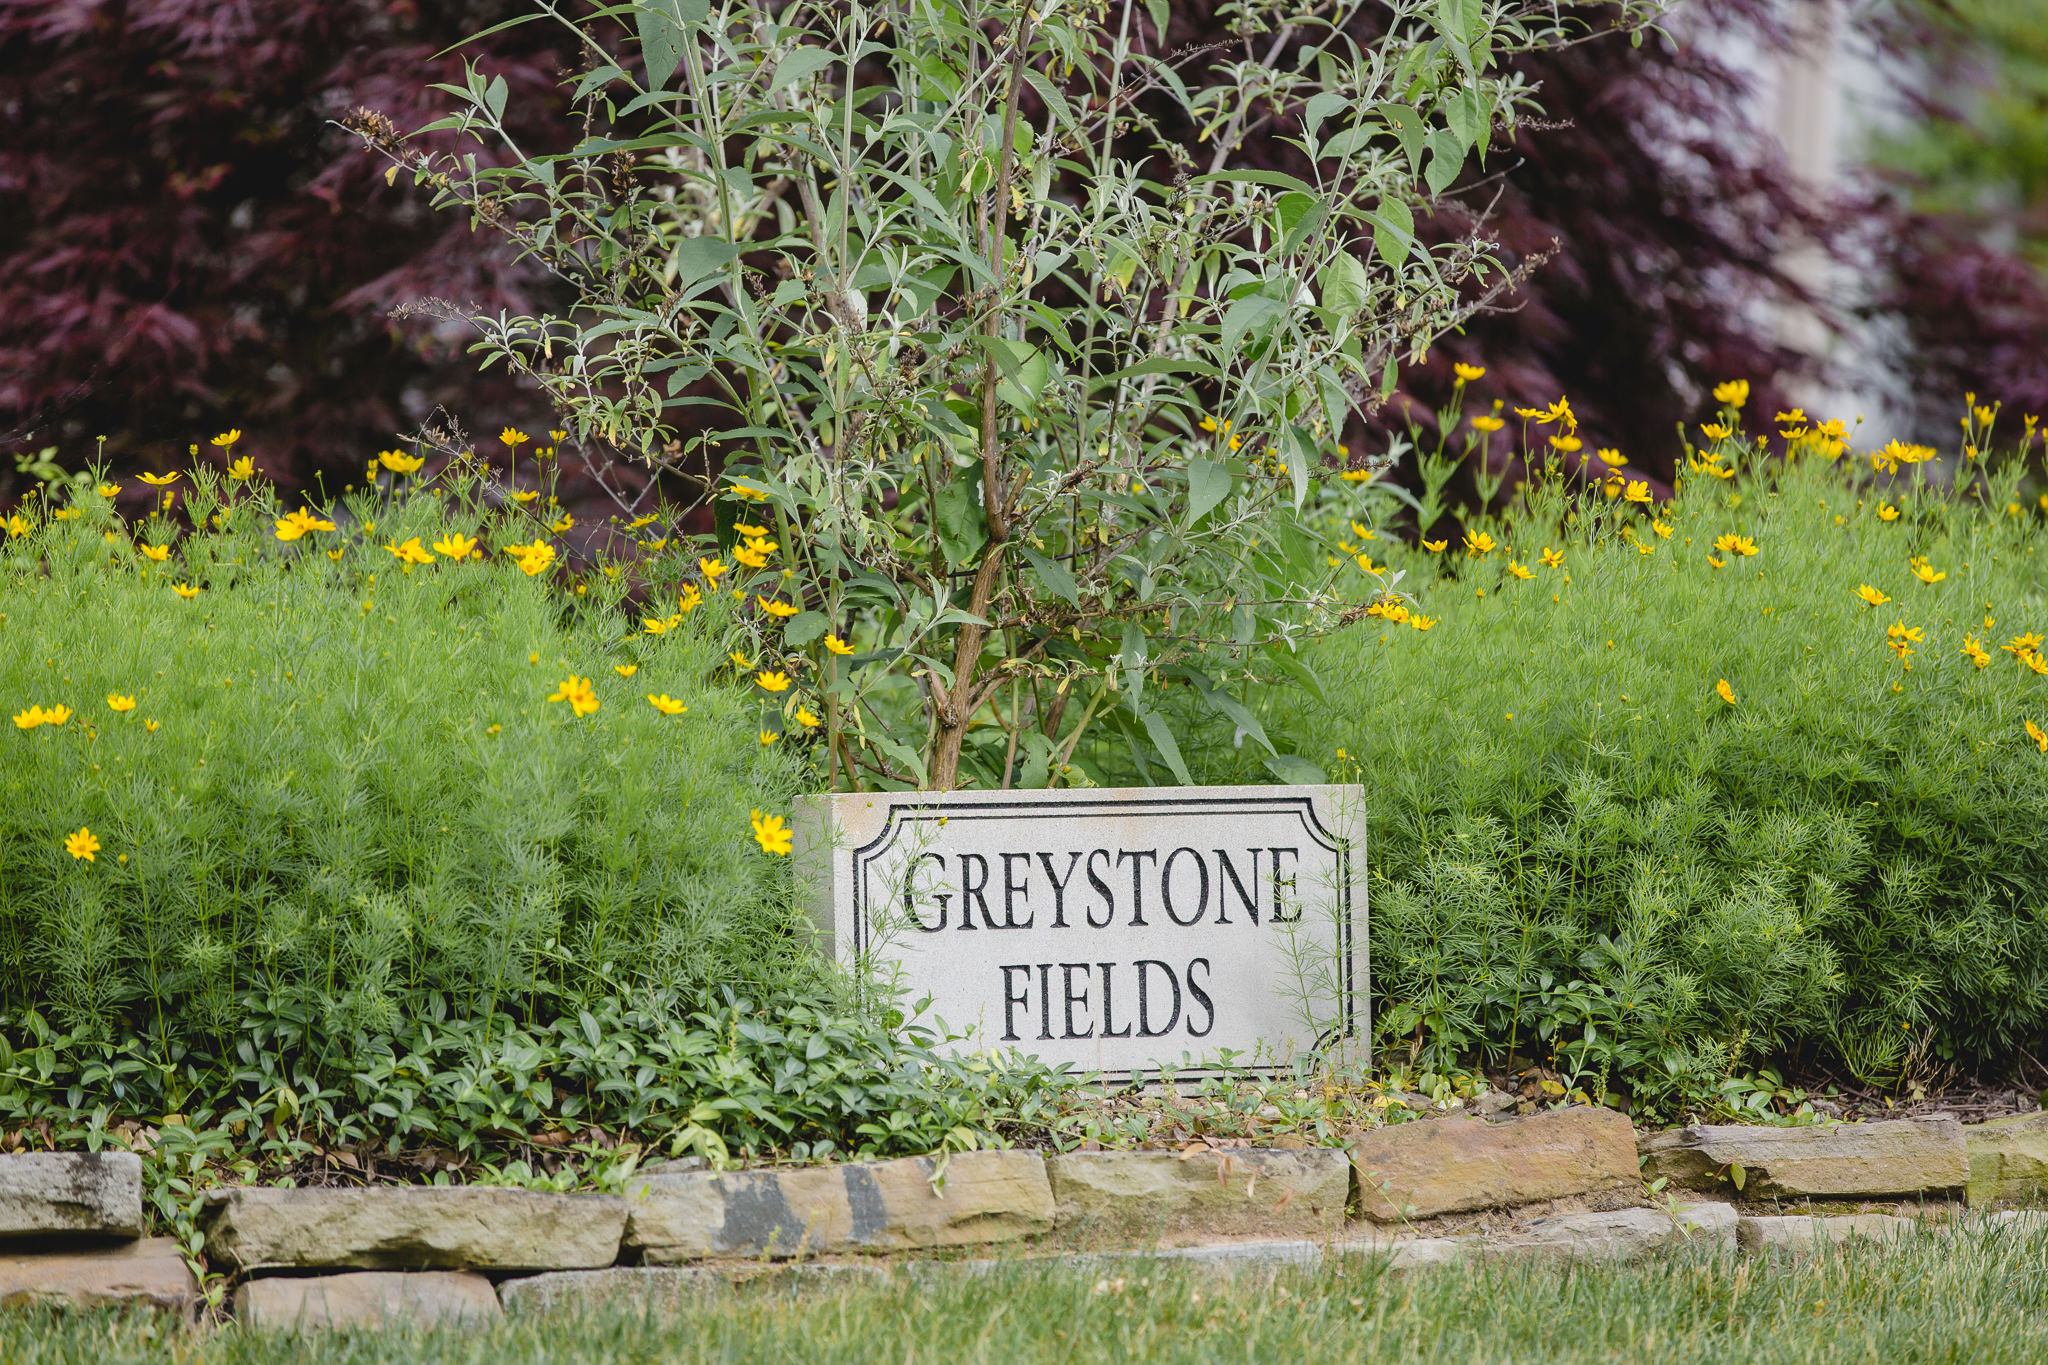 The sign at Greystone Fields in Gibsonia, PA